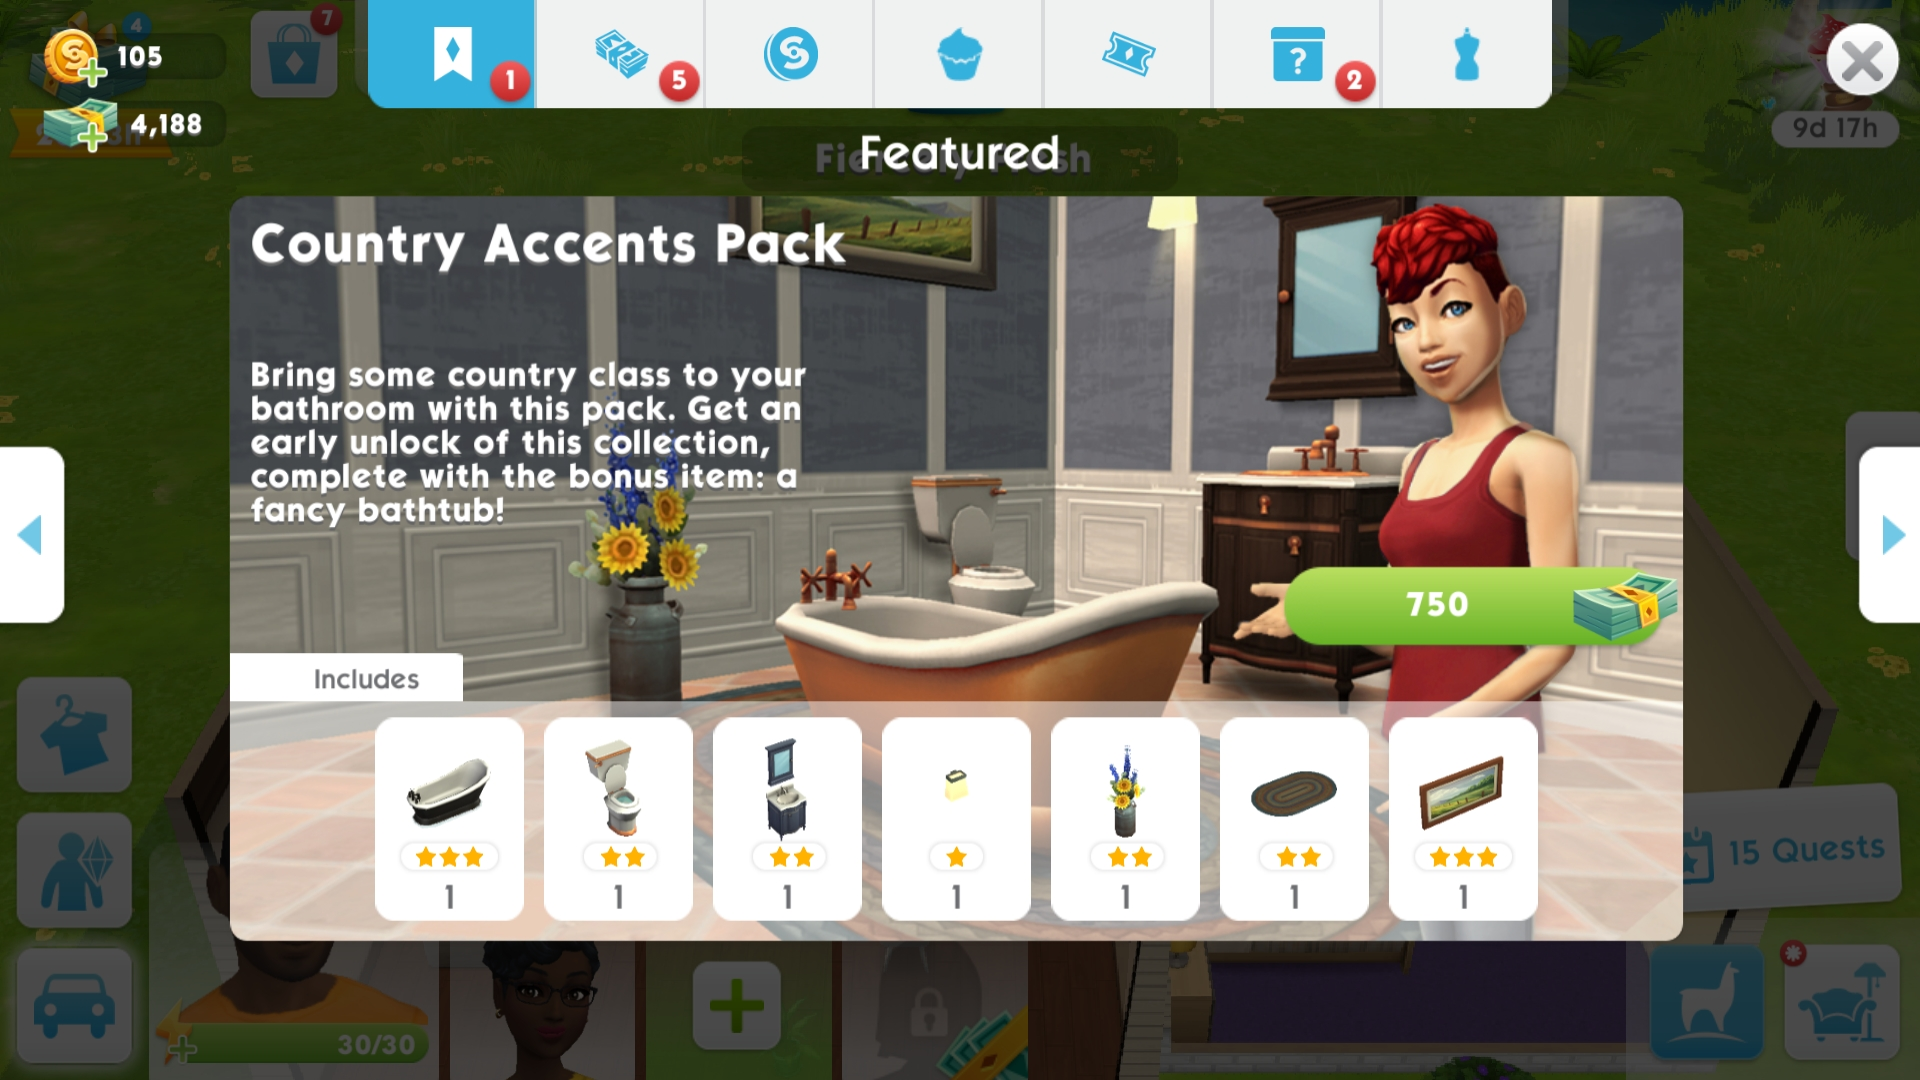 Country Accents Pack